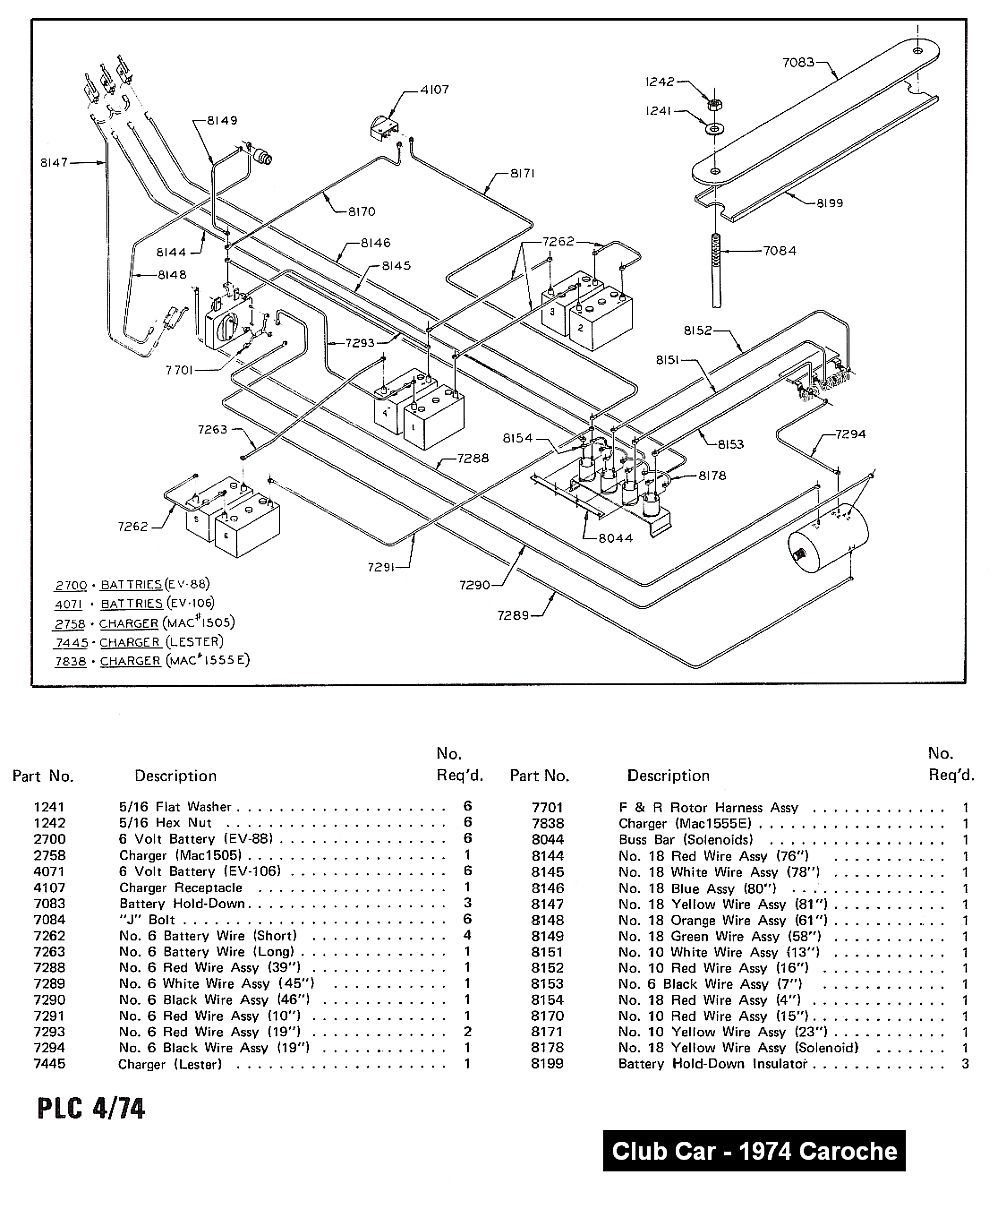 CC_74_Caroche vintagegolfcartparts com club car charger receptacle wiring diagram at bakdesigns.co